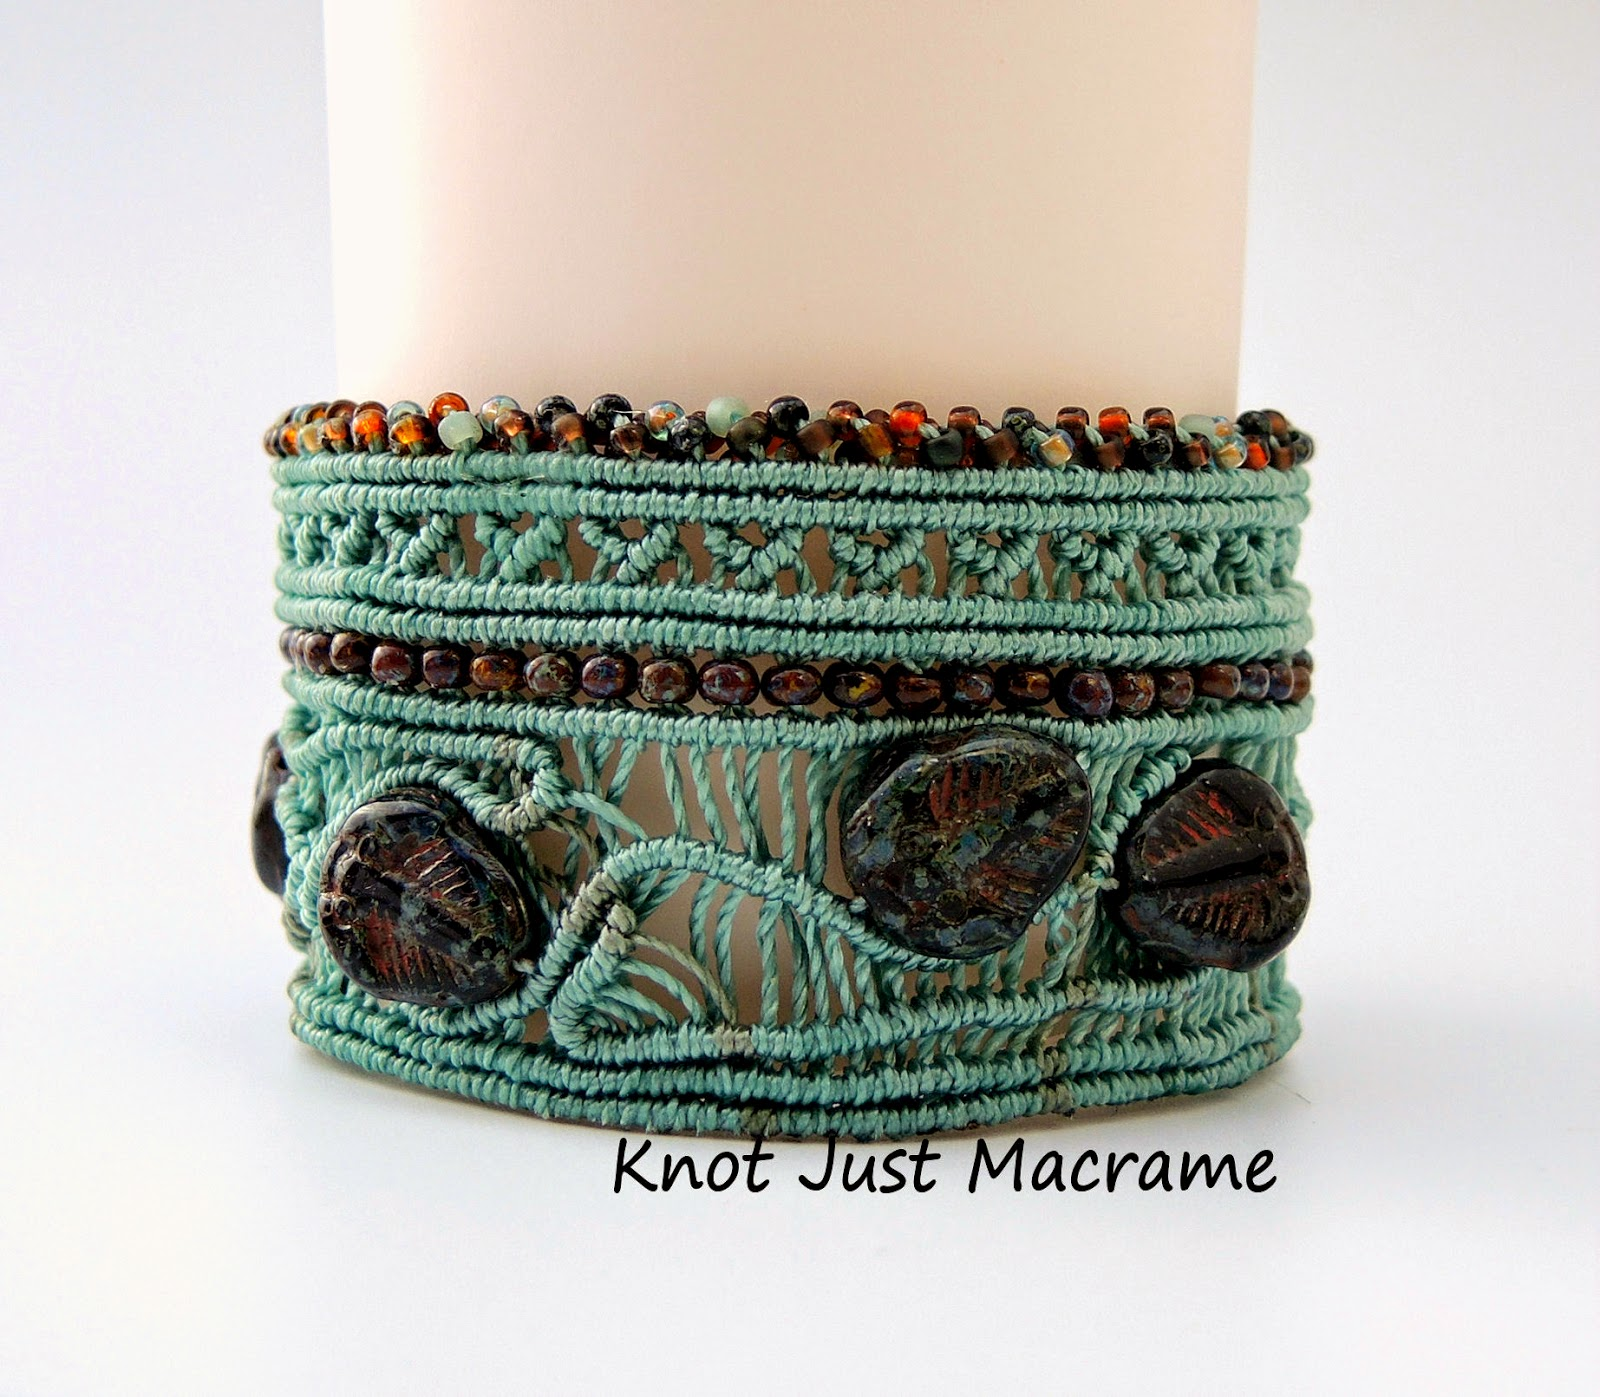 Micro macrame cuff bracelet by Knot Just Macrame